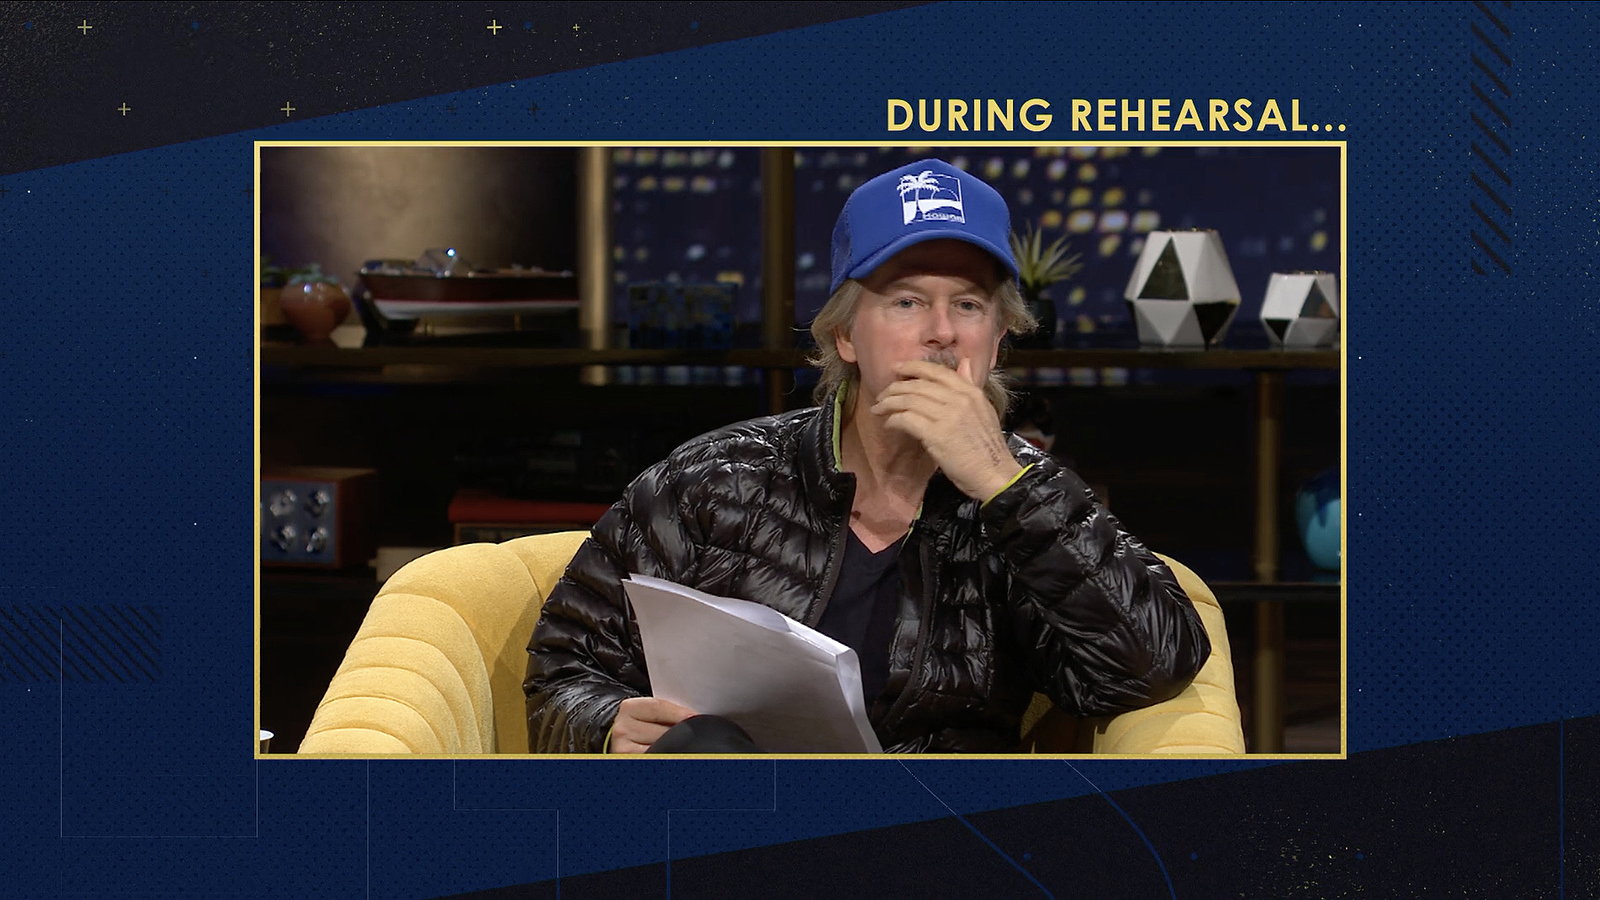 NCS_Comedy-Central_David-Spade_LightsOut_Motion-Graphics_009